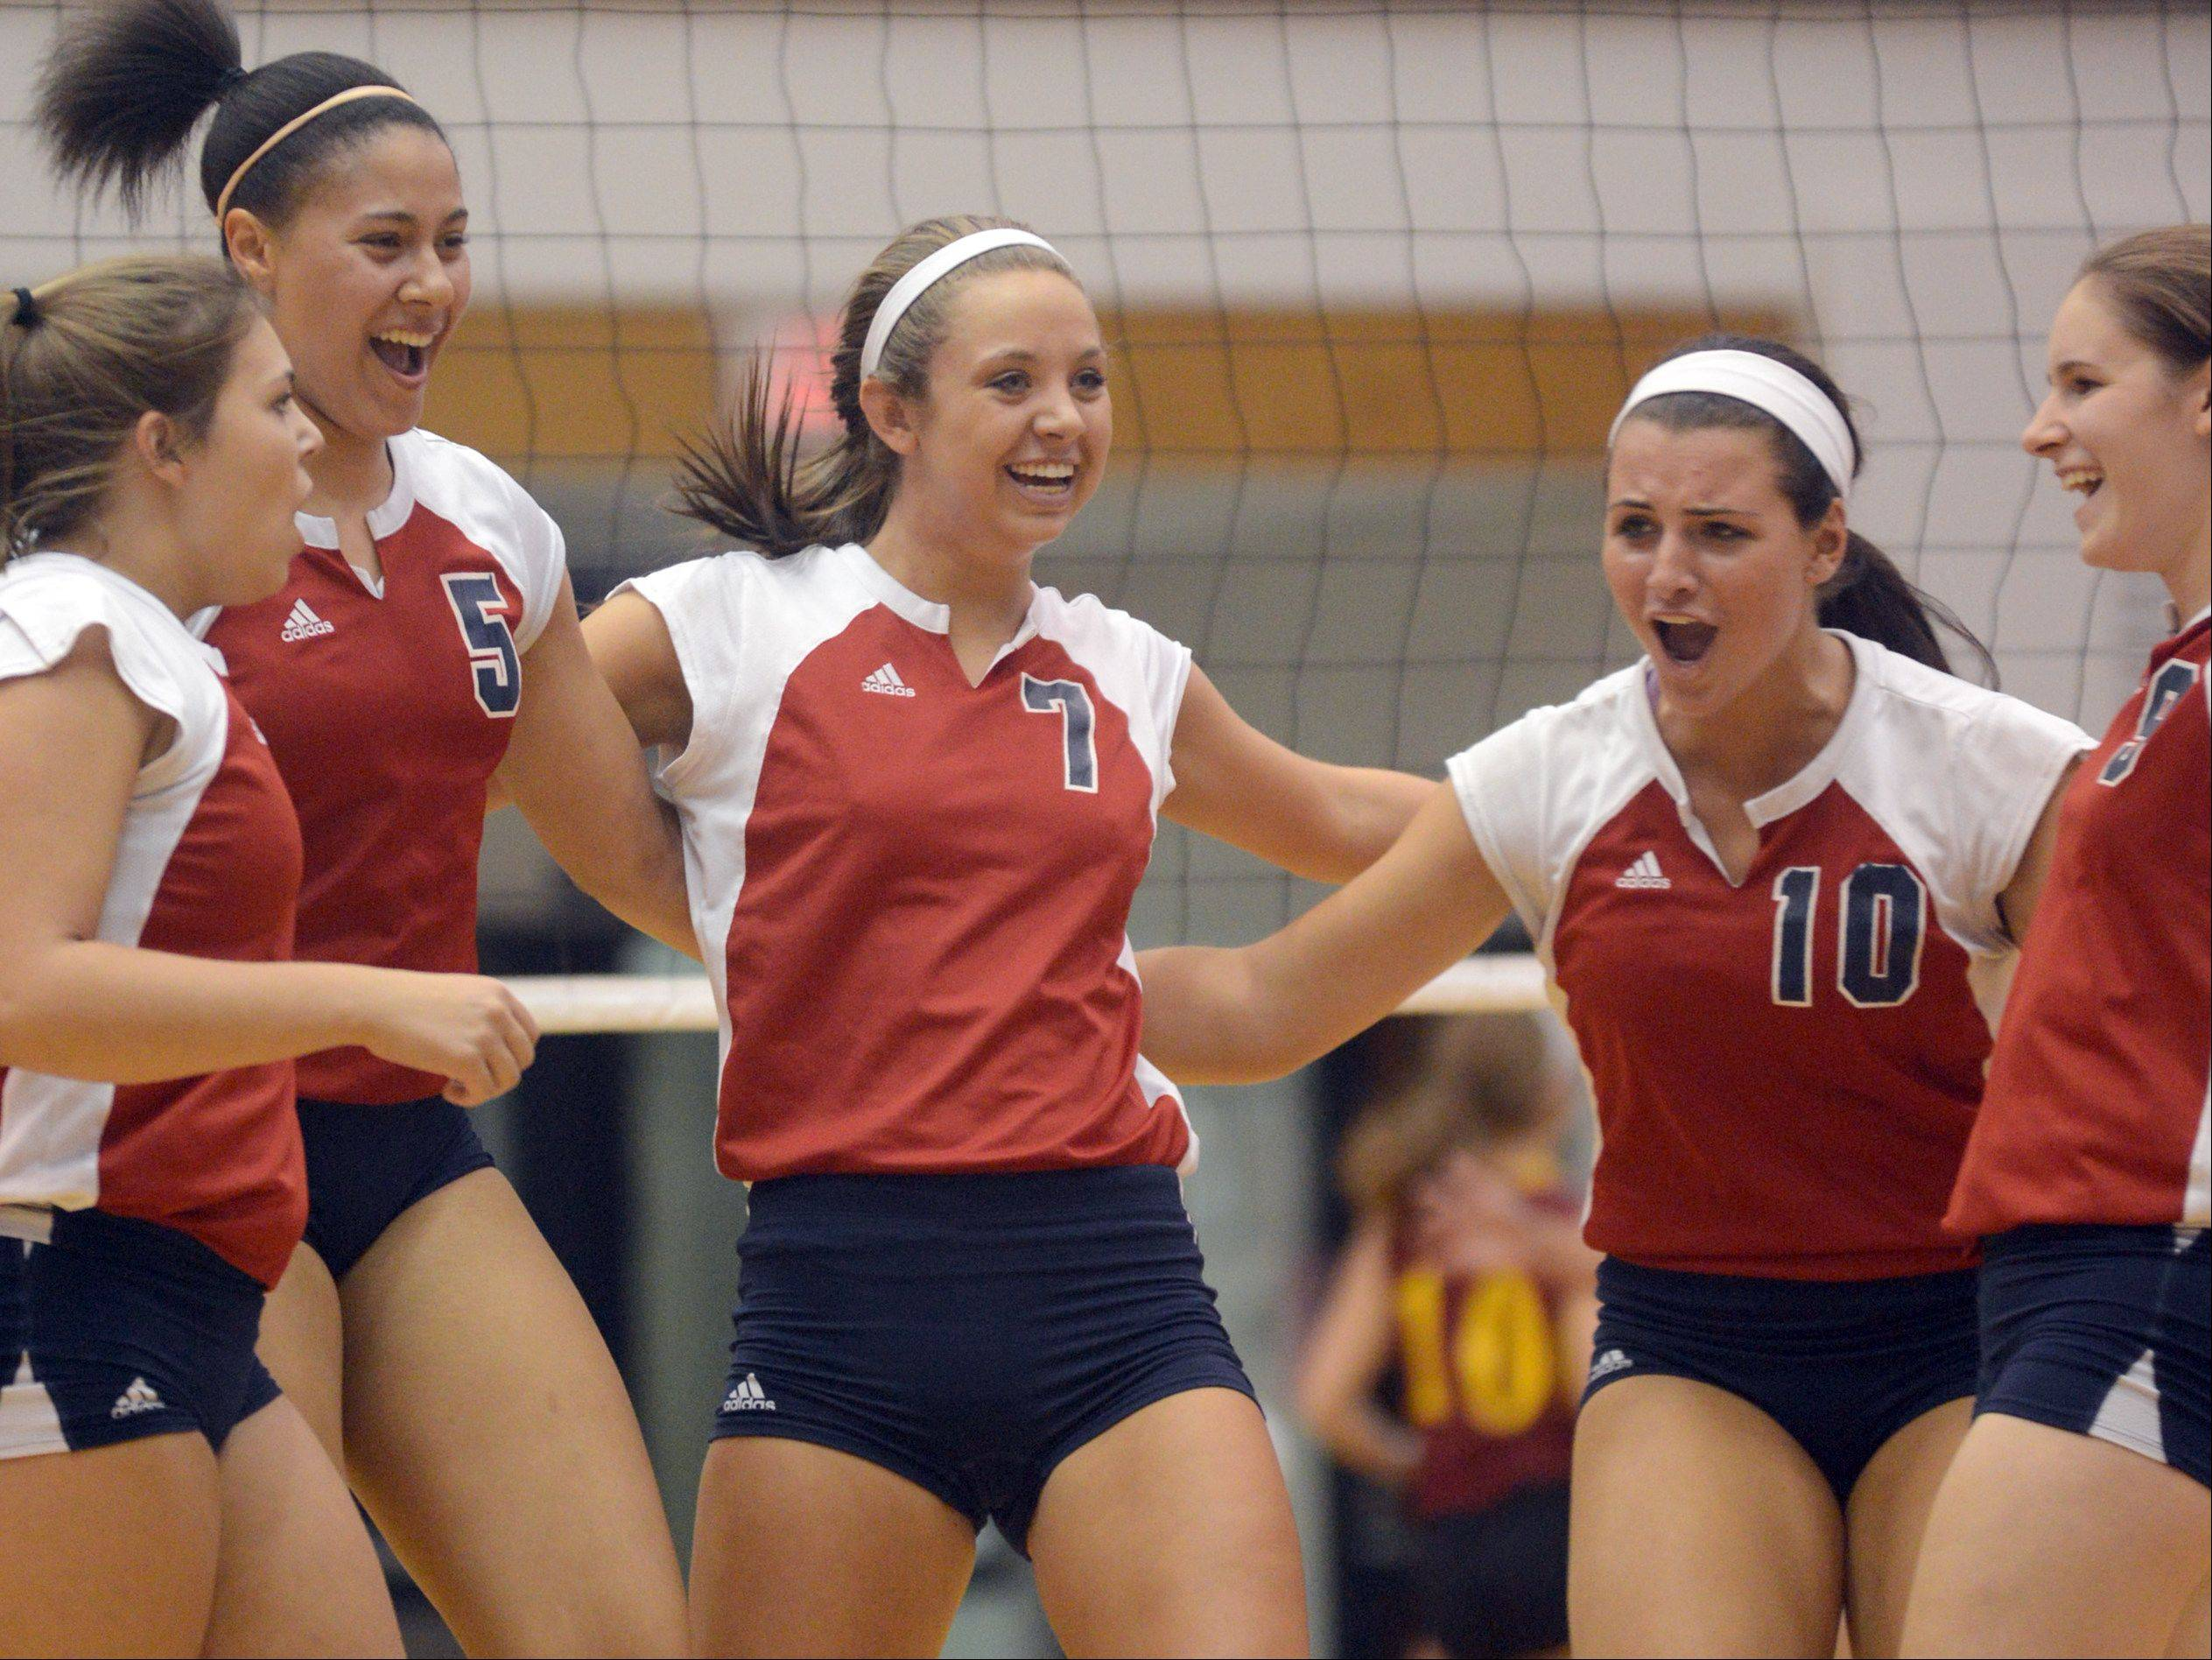 Conant's players celebrate a point against Schaumburg during varsity volleyball at Conant on Tuesday night.